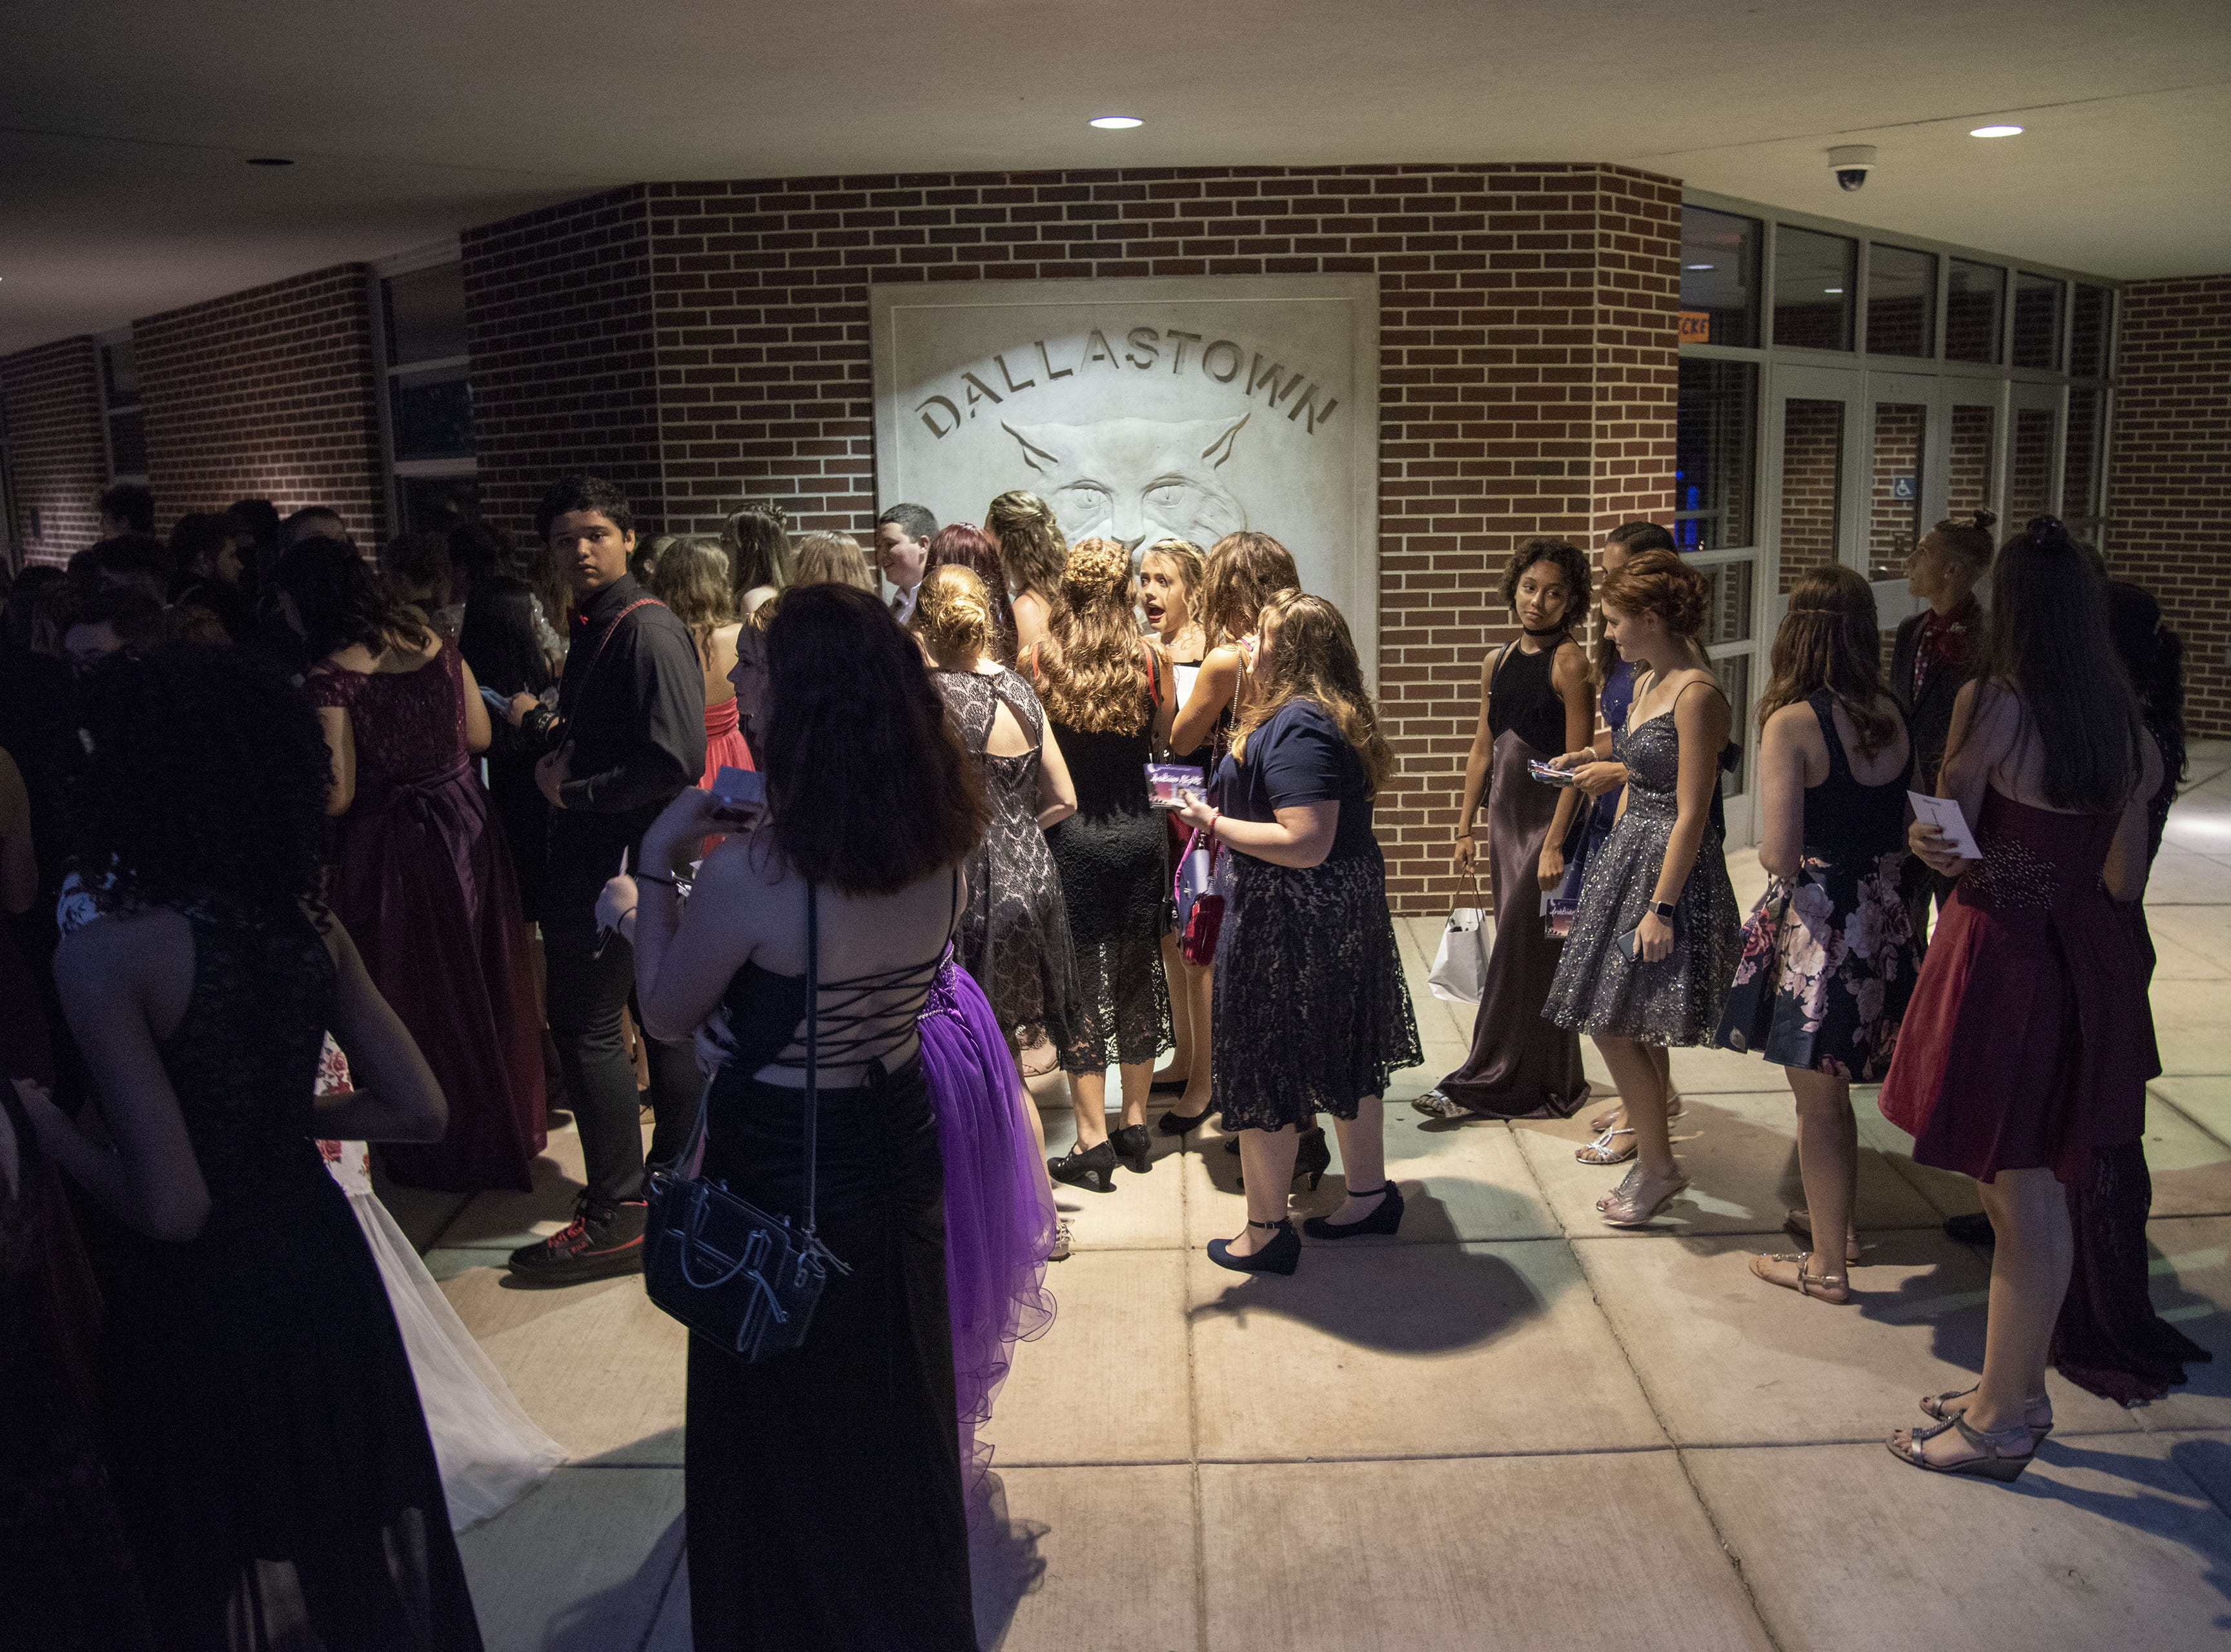 The doors opened to all the students at 6:50 p.m. for the Dallastown Area High School homecoming dance.